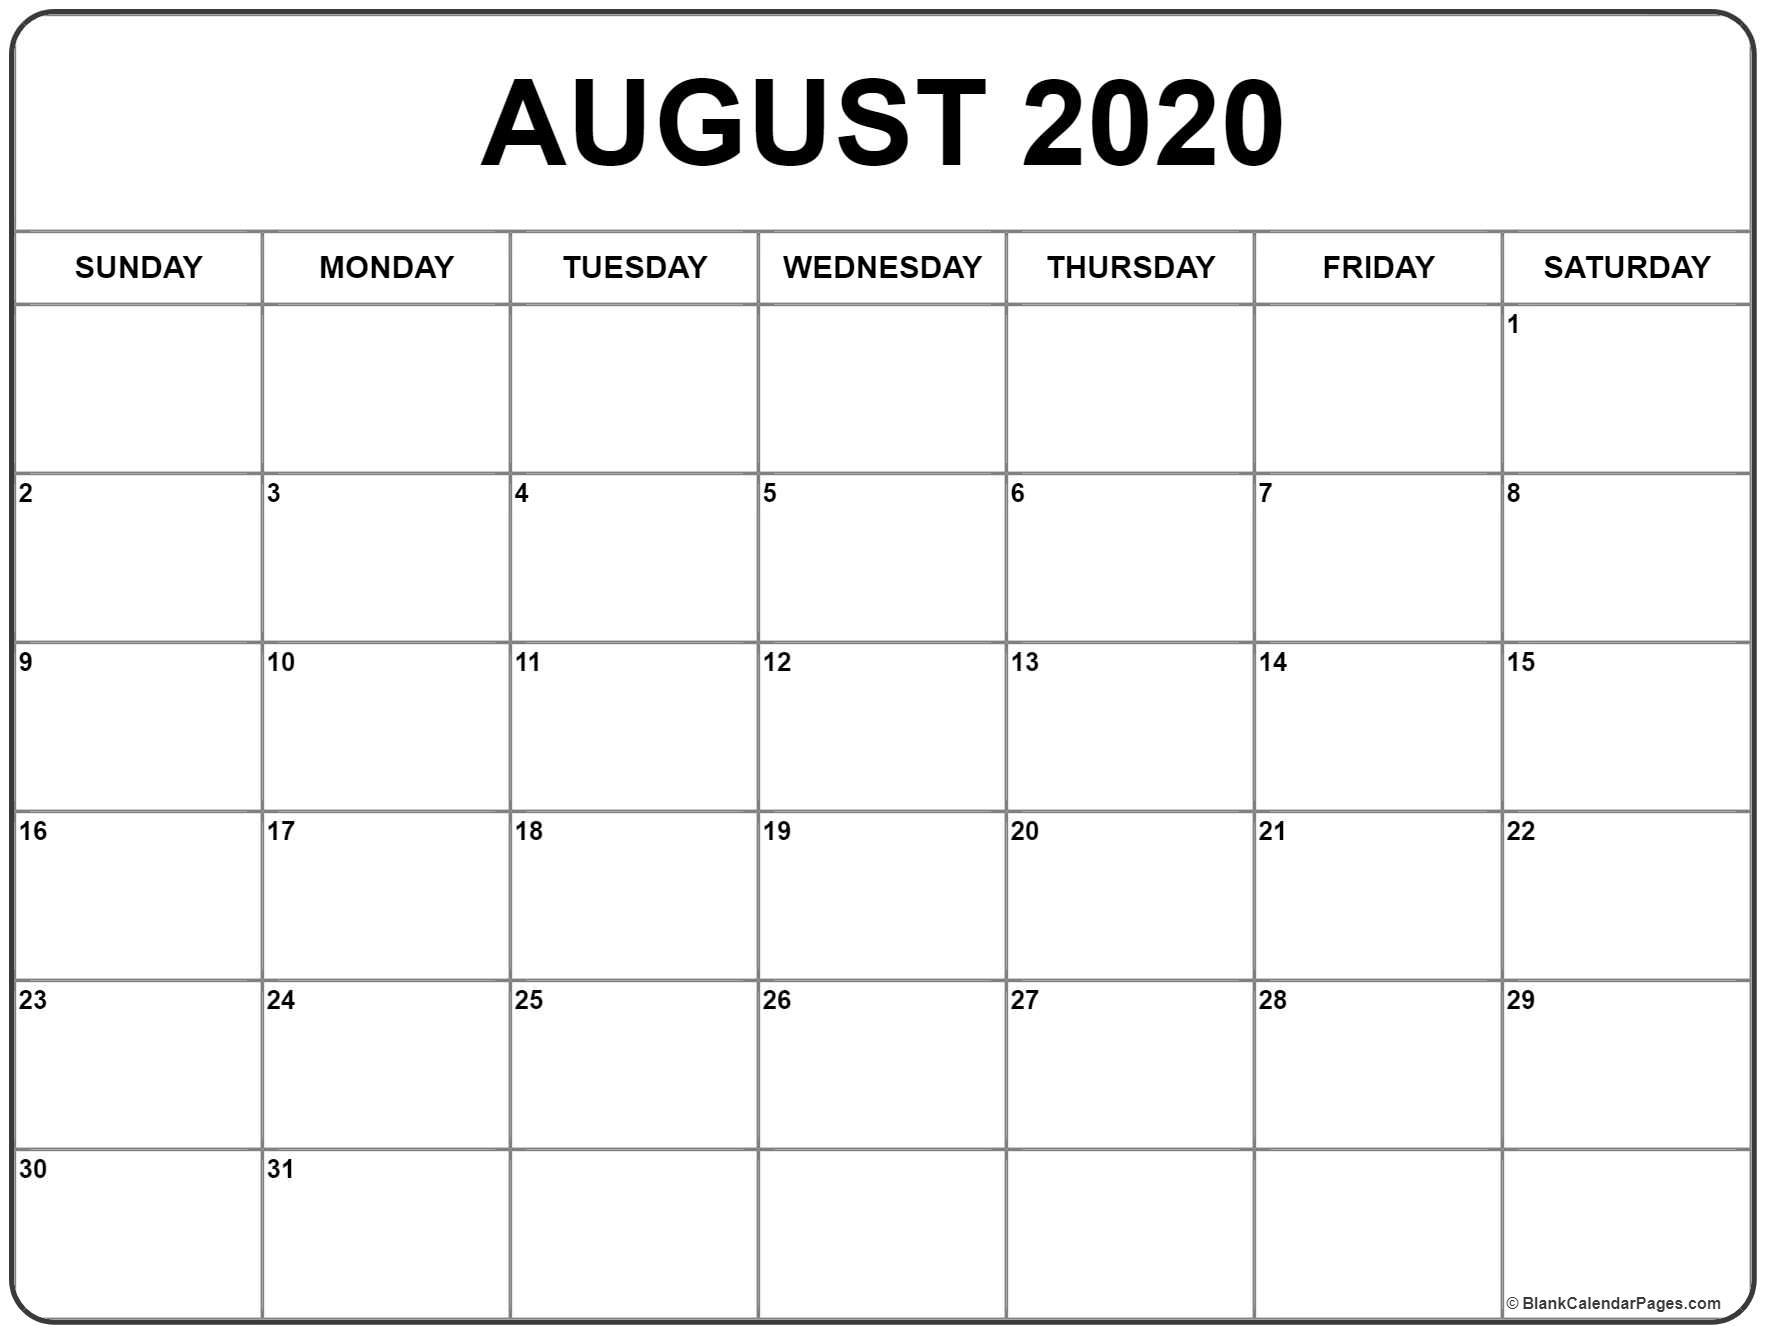 August 2020 Calendar | Free Printable Monthly Calendars intended for Large Print Free Printable Calendar 2020